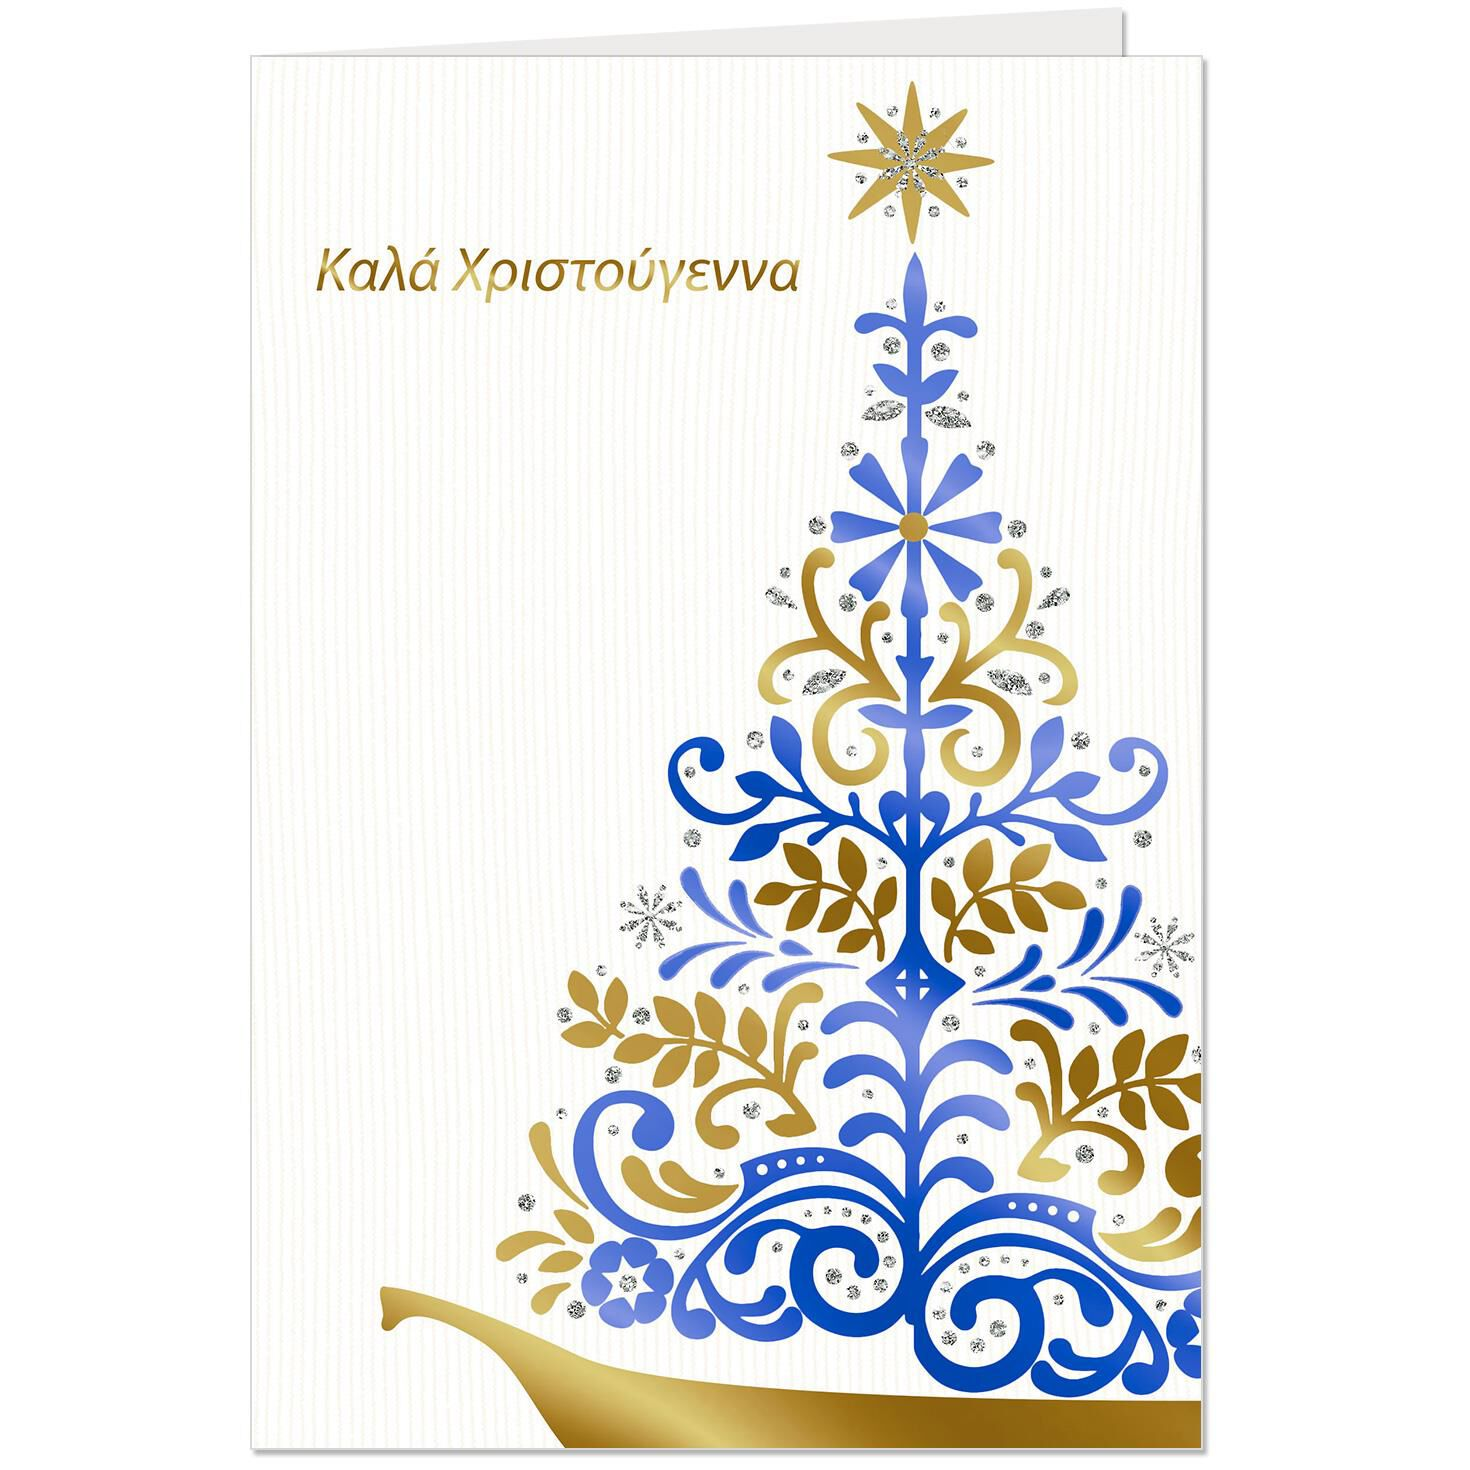 a season bright and blessed greek language christmas card greeting cards hallmark - Merry Christmas In Greek Language